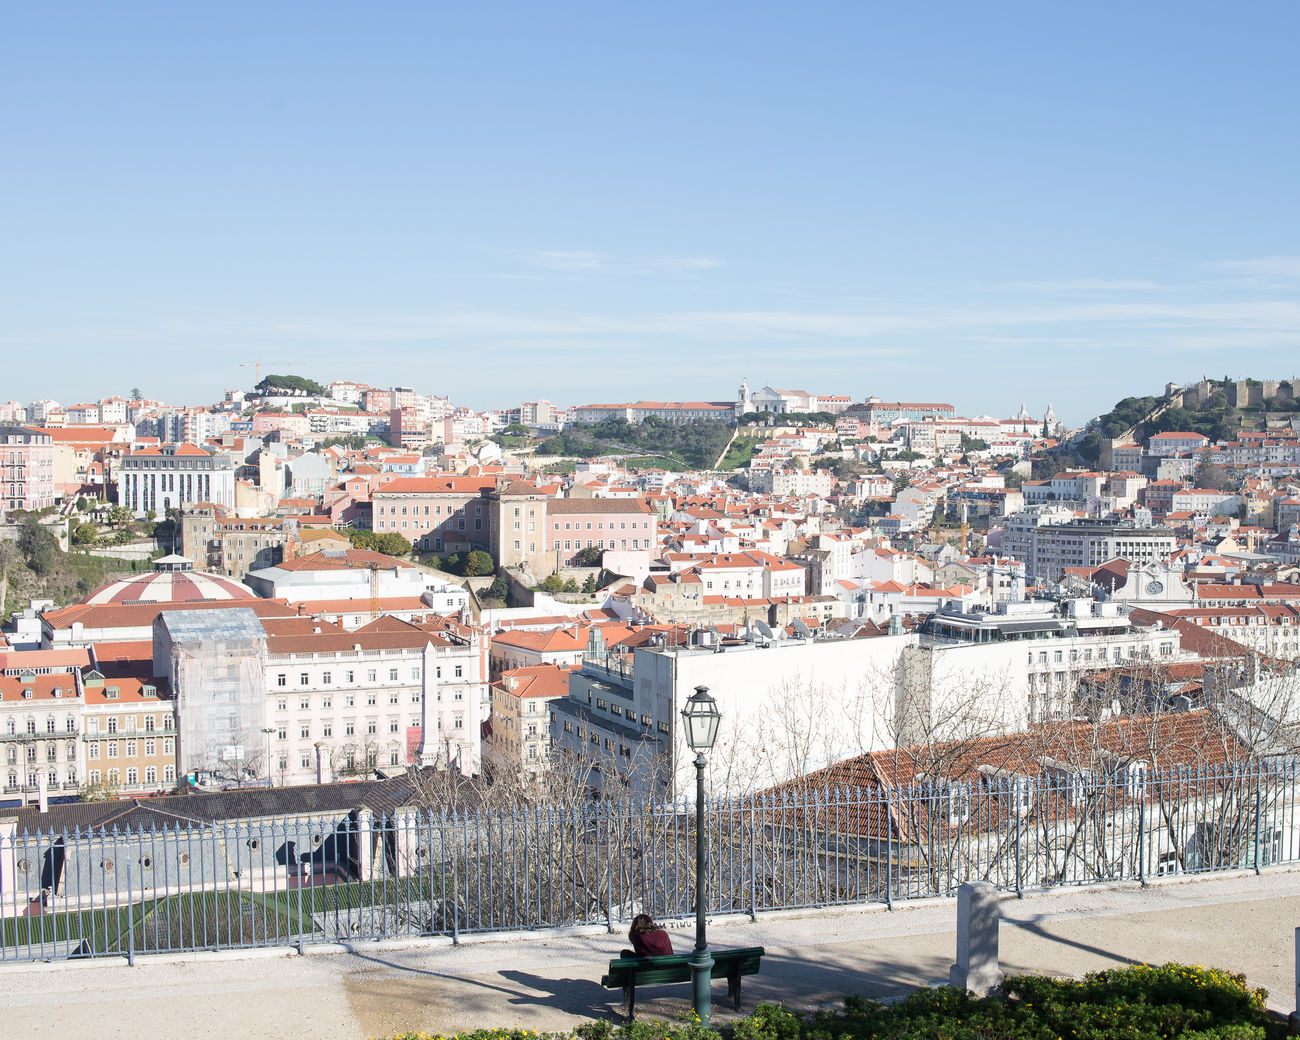 beautiful portugal Architecture Building Exterior Building Terrace City Cityscape Clear Sky Day Outdoors People Sea Sky Travel Destinations Urban Skyline Vacations